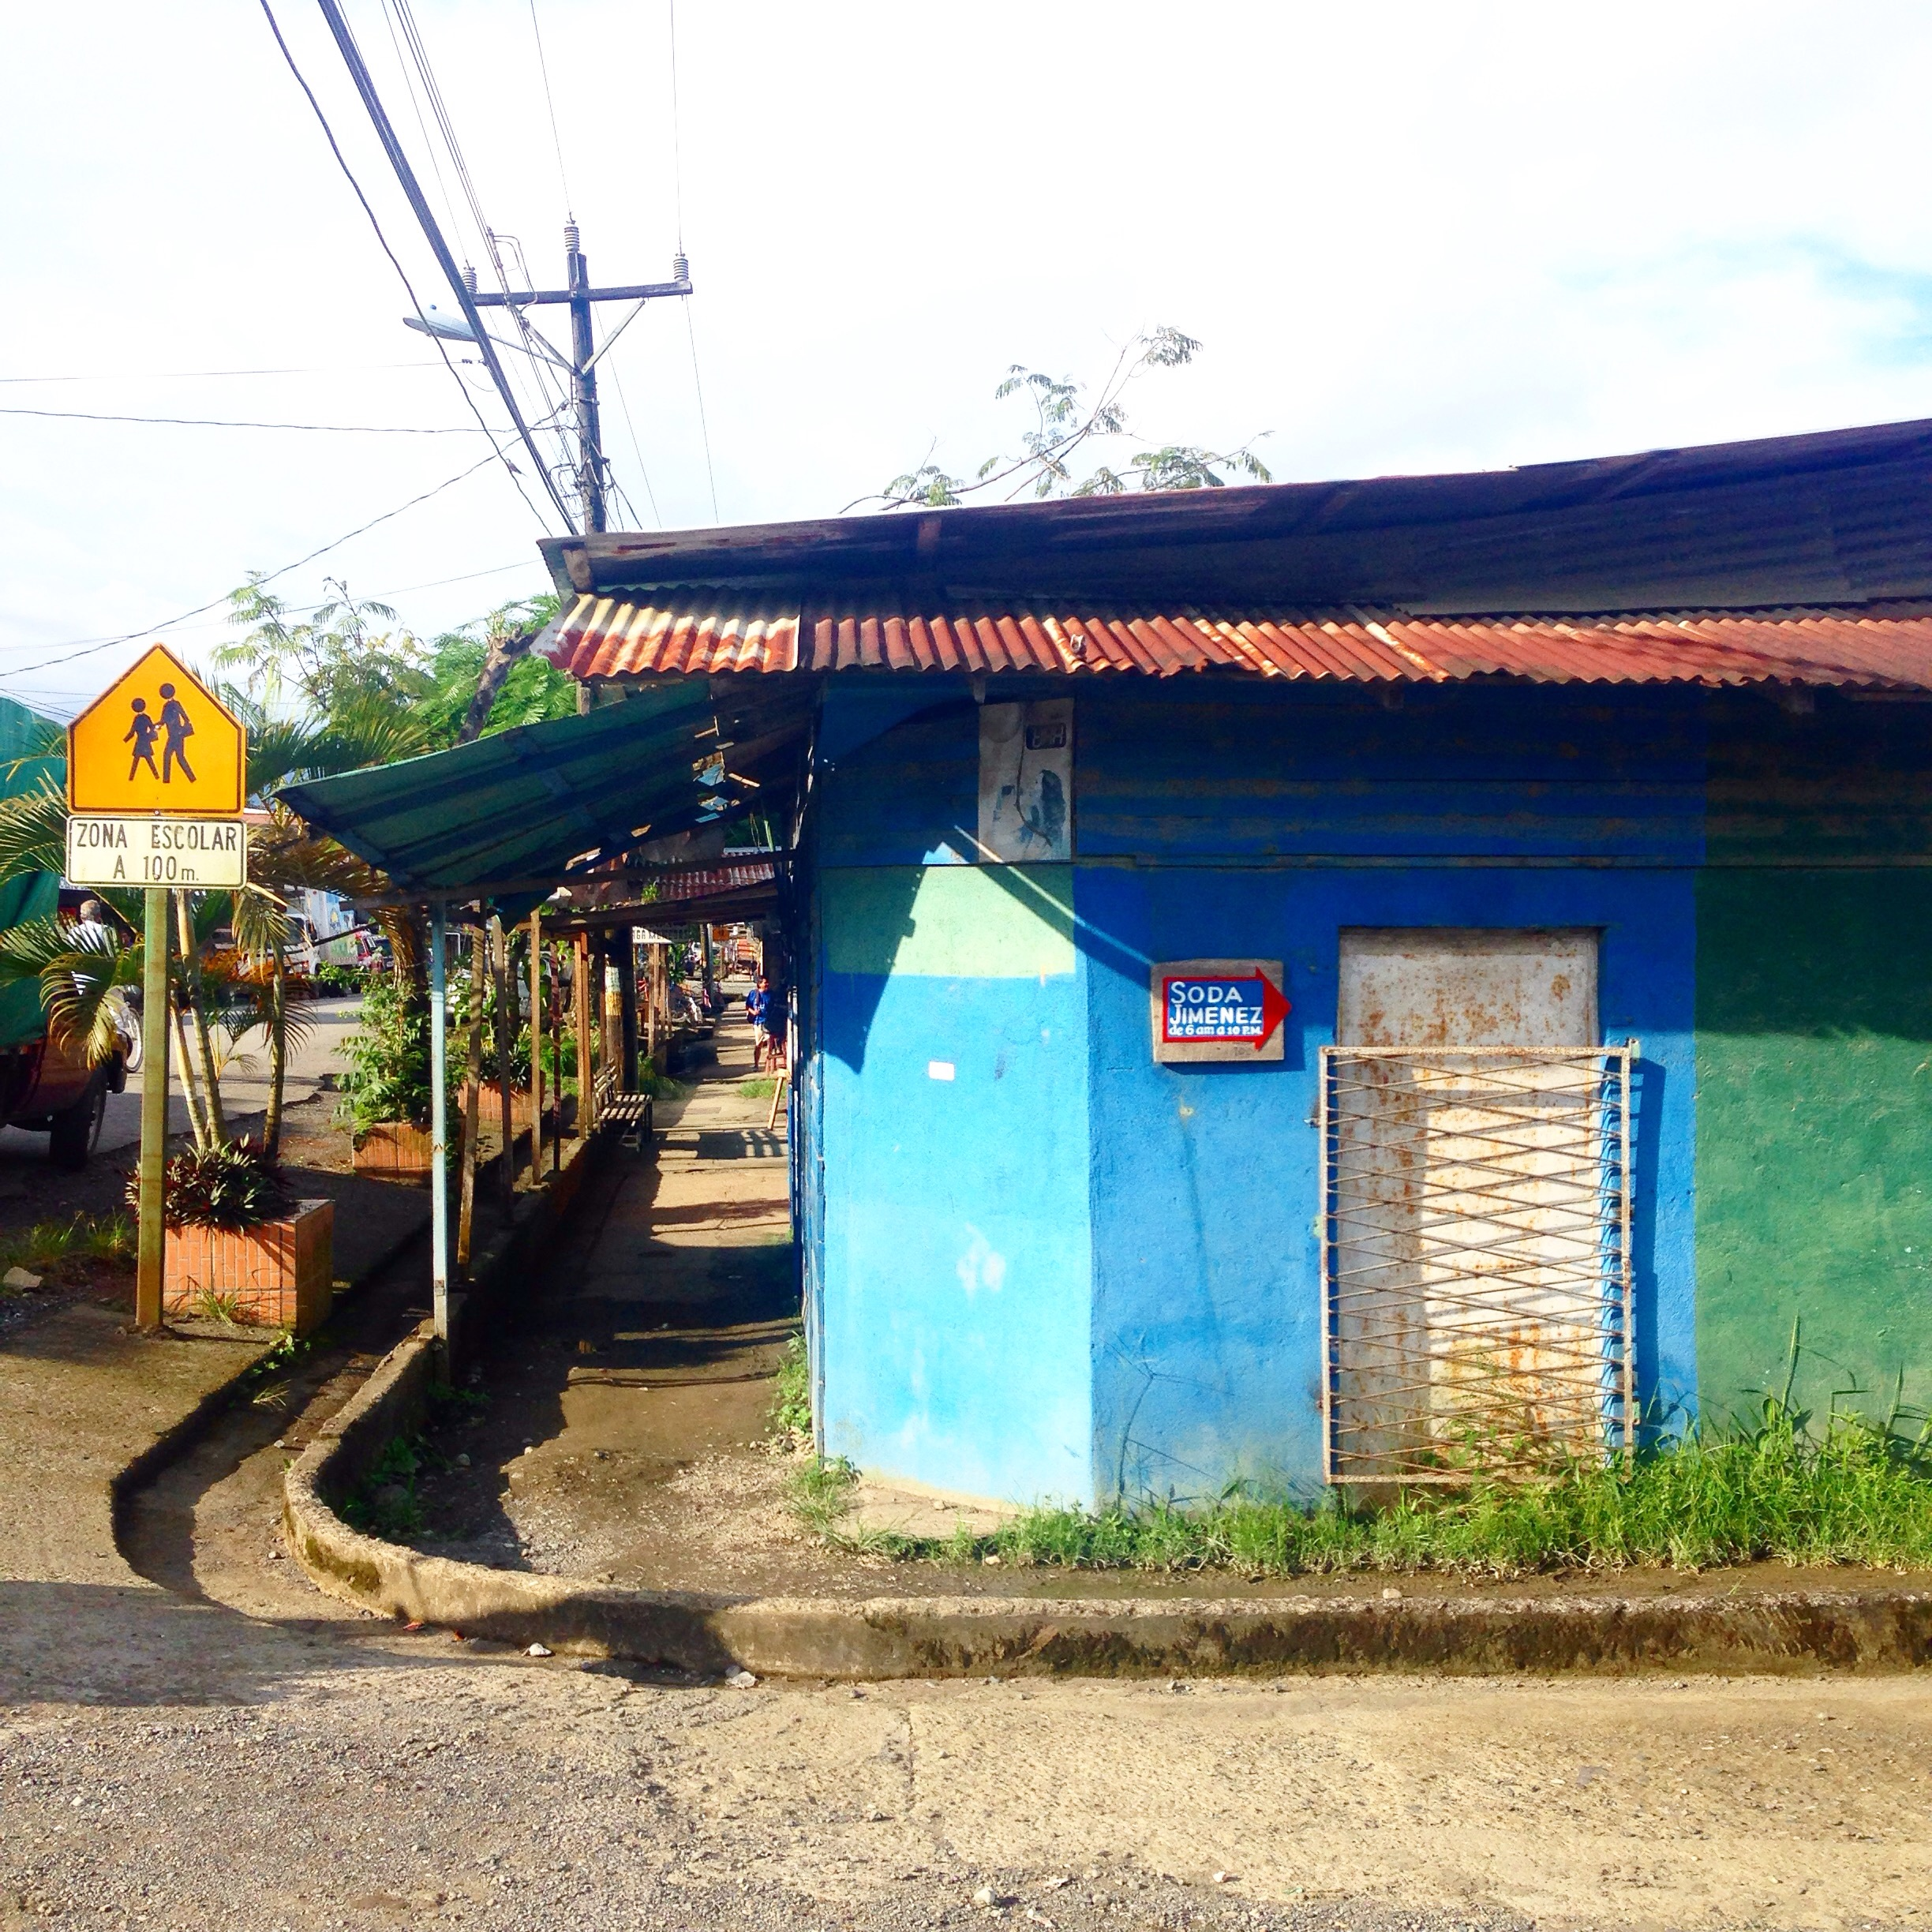 """A trip into town (Puerto Jimenez) features a Costa Rican """"soda"""" which we'd consider a homey mom & pop restaurant.  (Here's   how to get to Puerto Jimenez , Costa Rica  and the kind of  food a typical """"Soda"""" serves .)"""